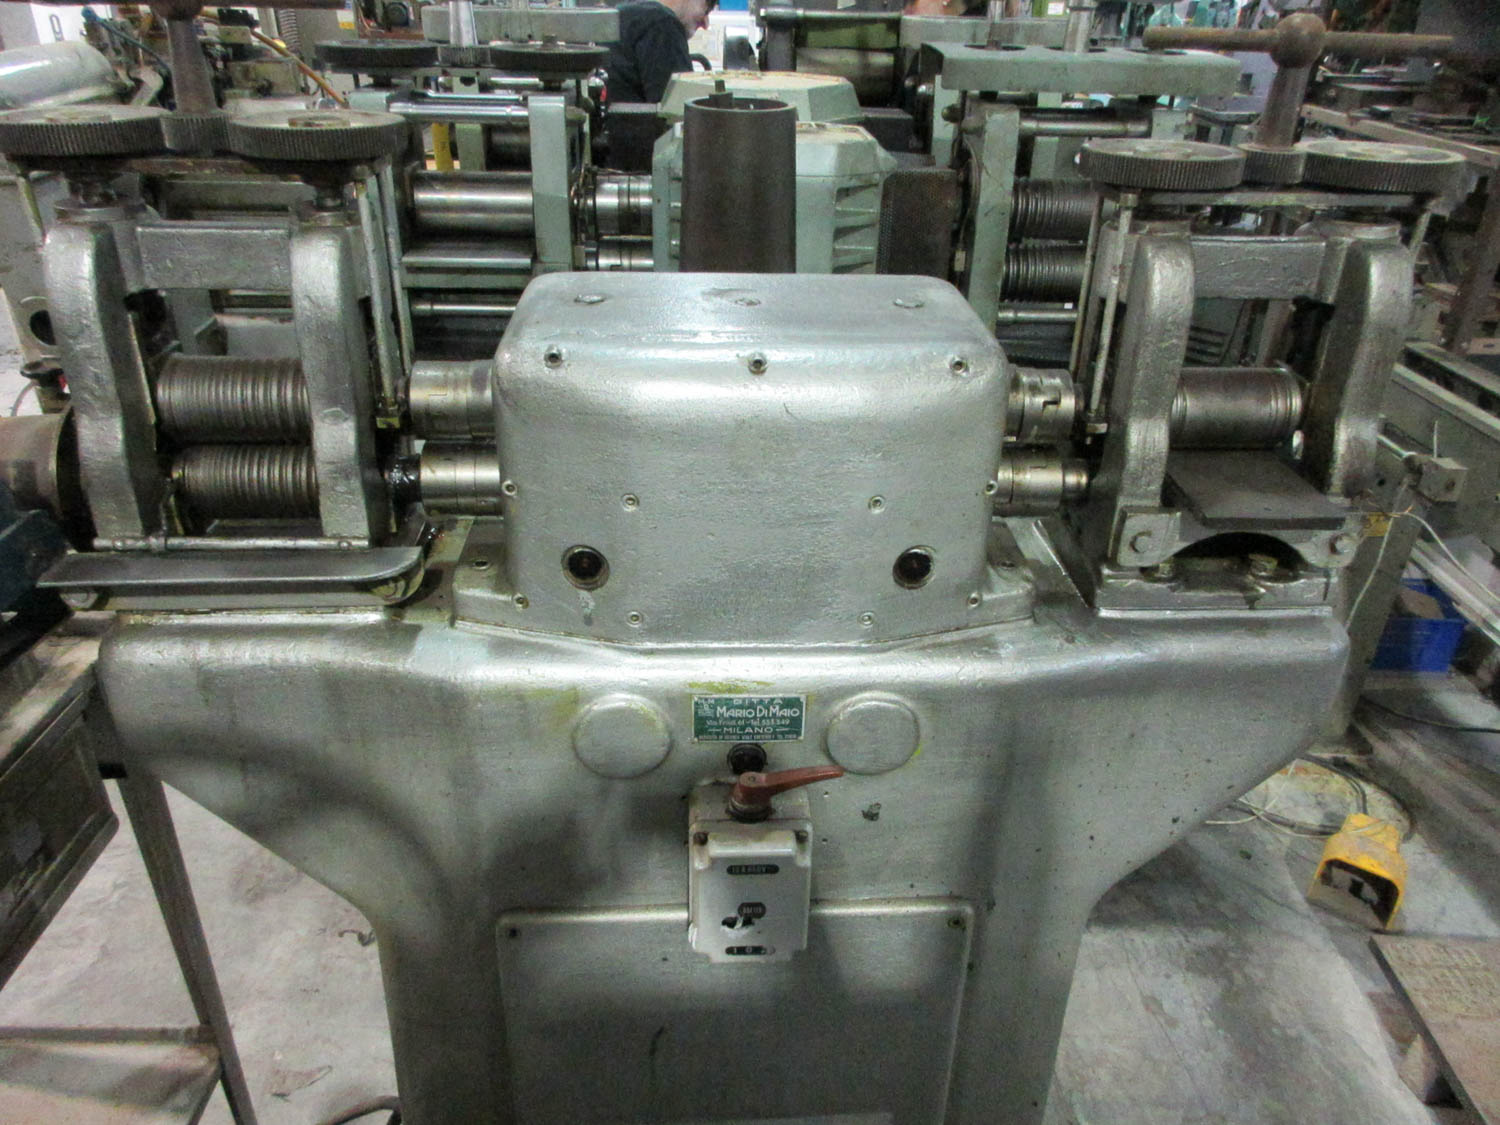 Lot 61 - MARIO DI MAIO ROLLING MILL; 380V; 3 PH, 50HZ, (2) 12CM/EA ROLLS [A#30][LOCATED IN Kiryat Malachi]